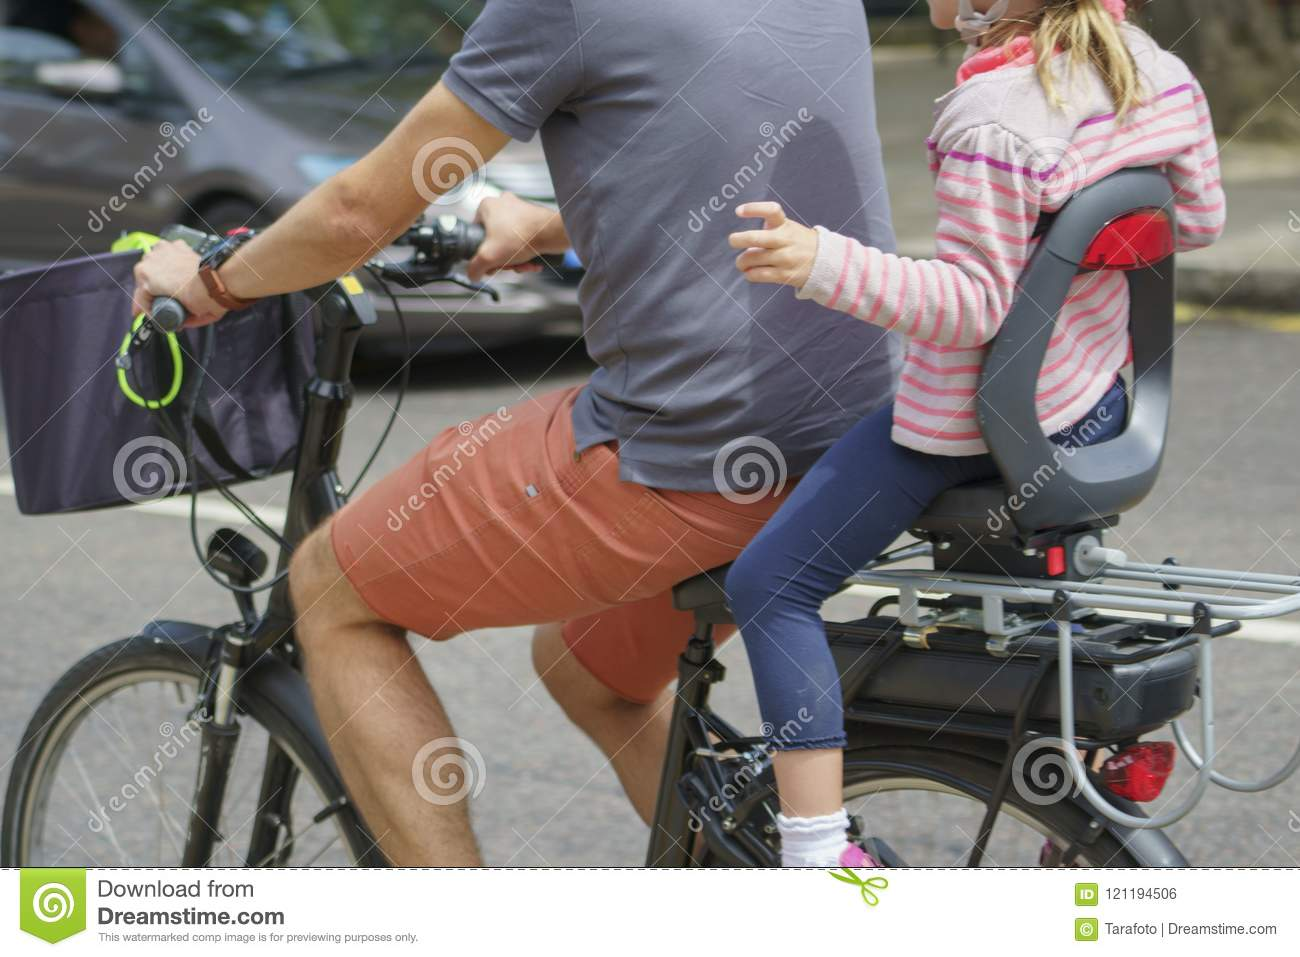 Chair Bike Child Riding Bicycle In Childs Chair Stock Photo Image Of Park